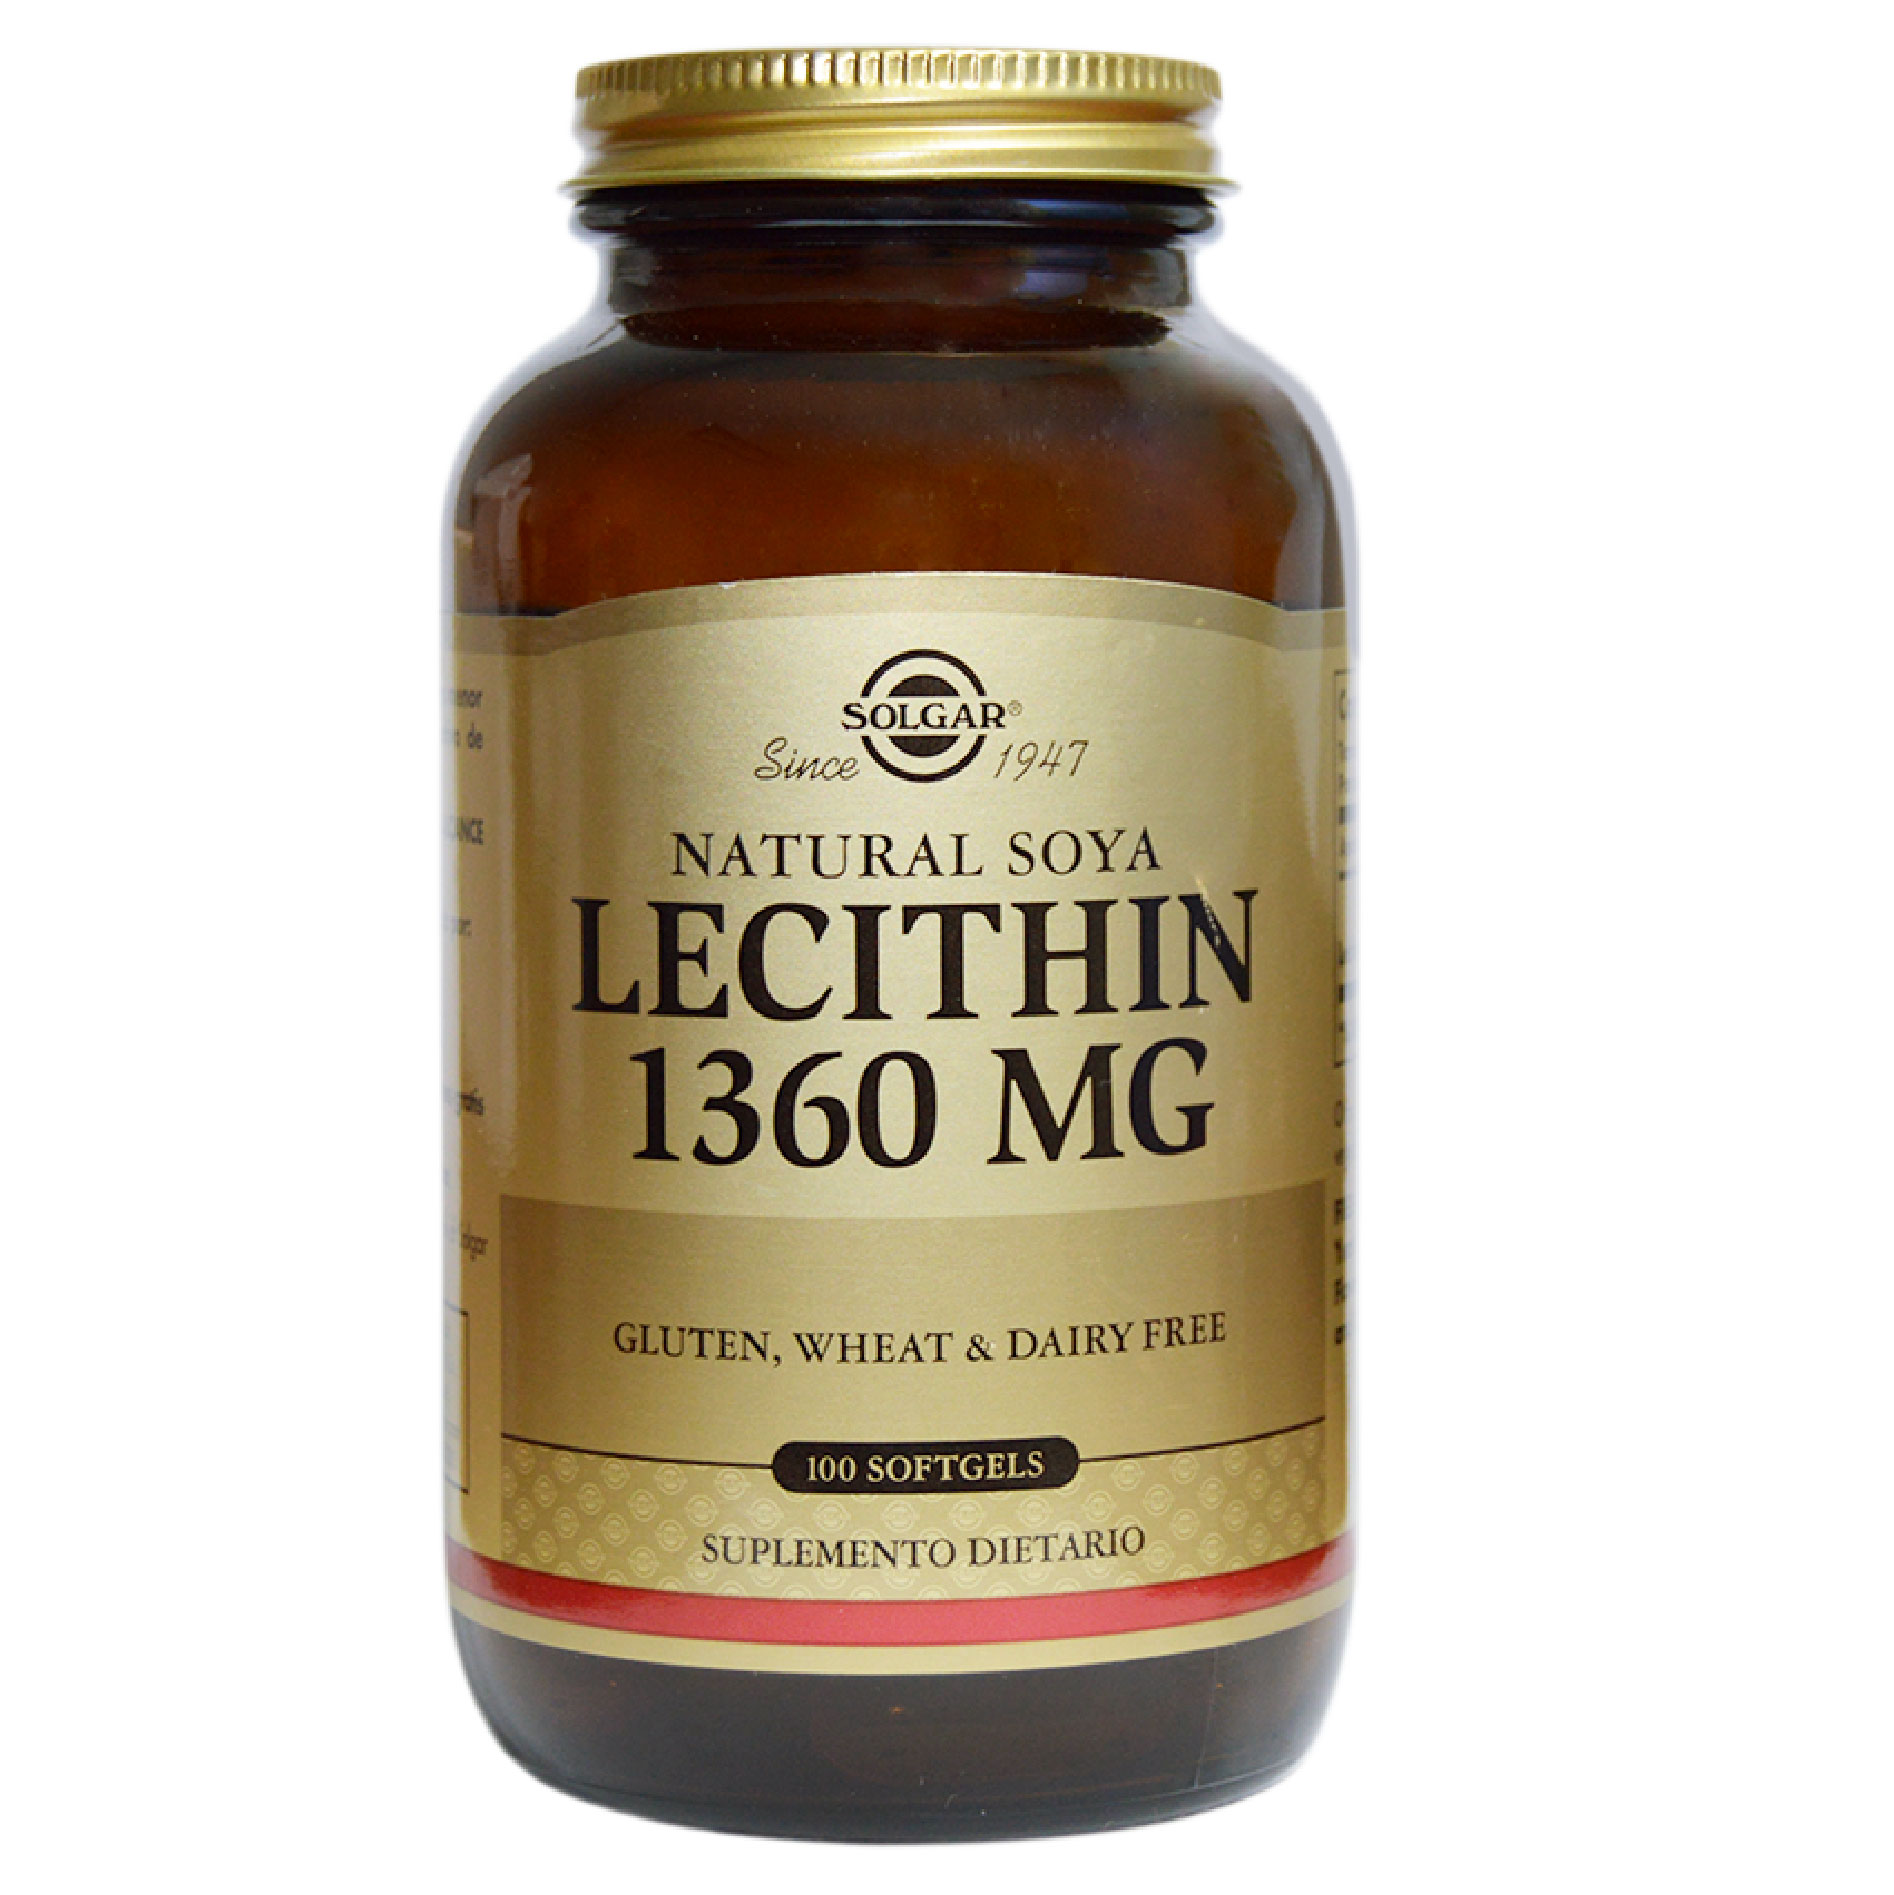 LECITHIN SOFTGELS 1360 MG 100 CAP